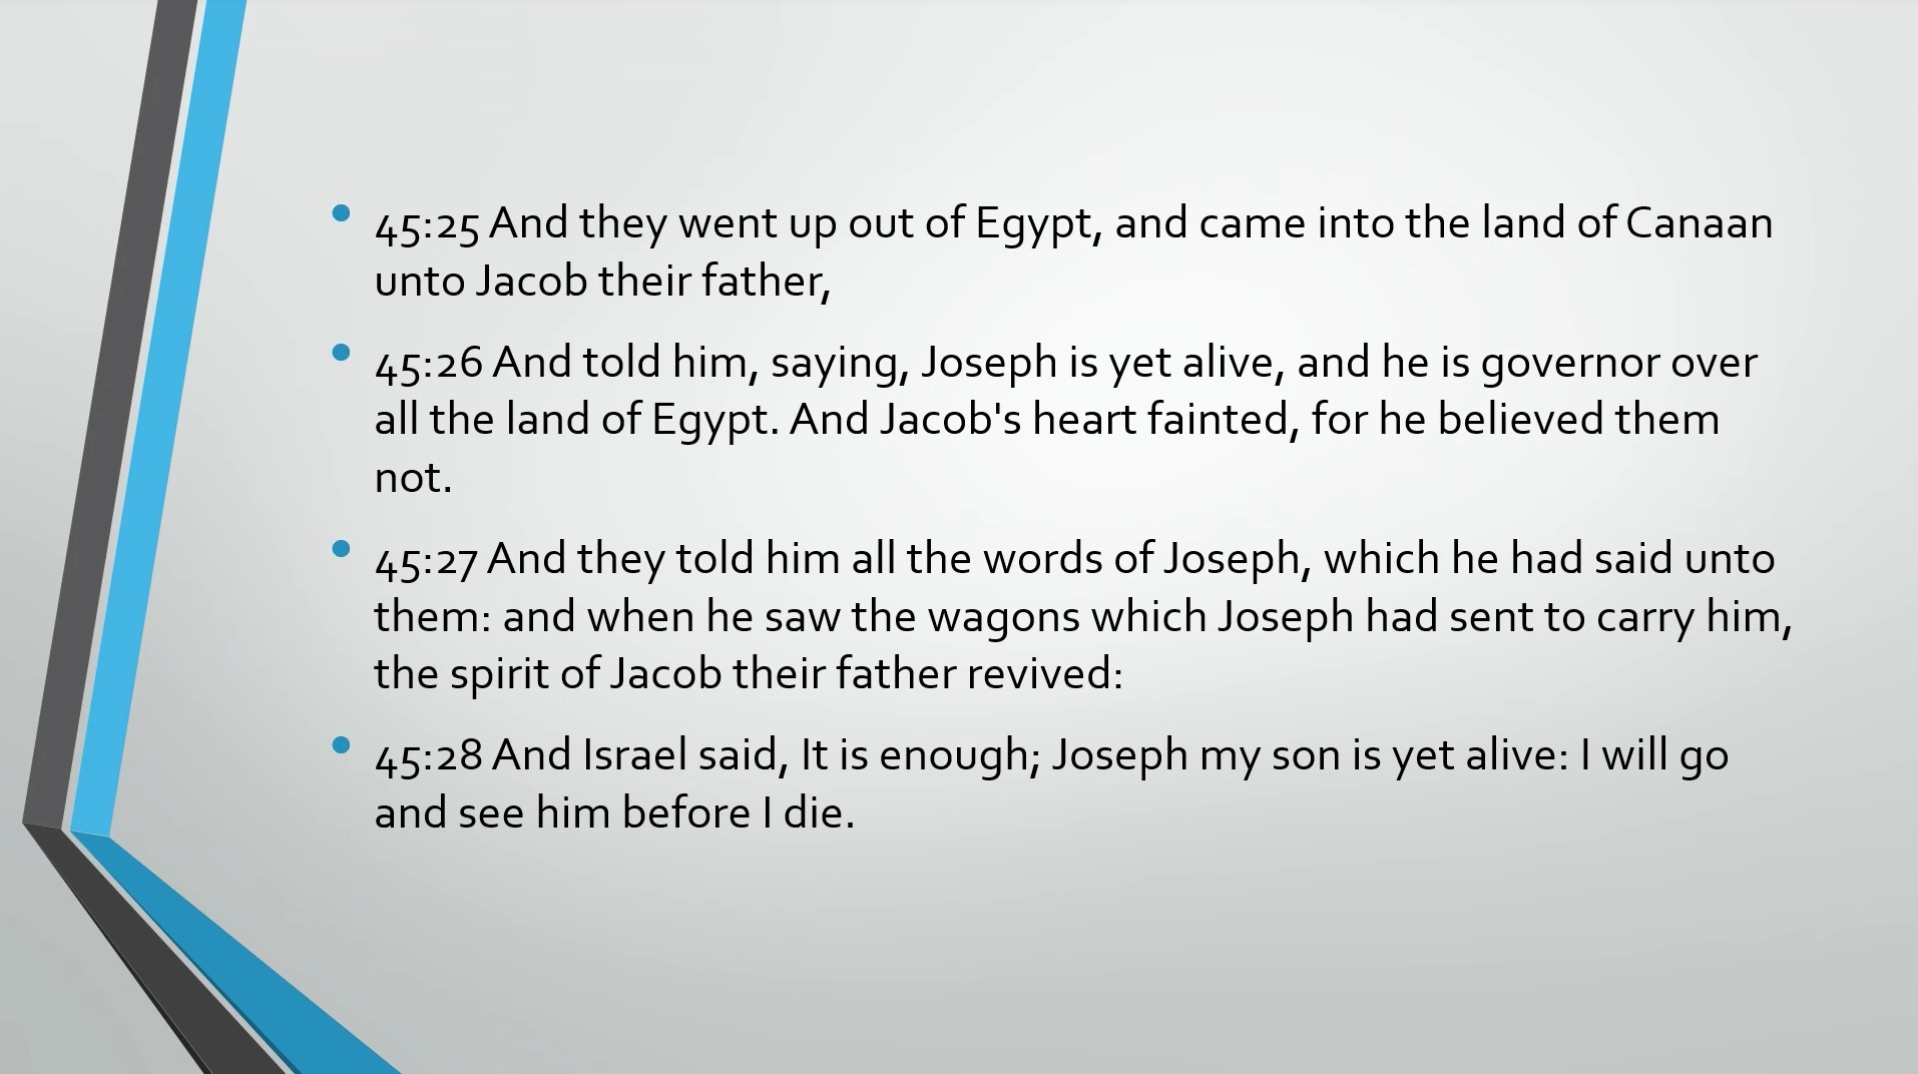 Biblical Series XV: Joseph and the Coat of Many Colors Transcript